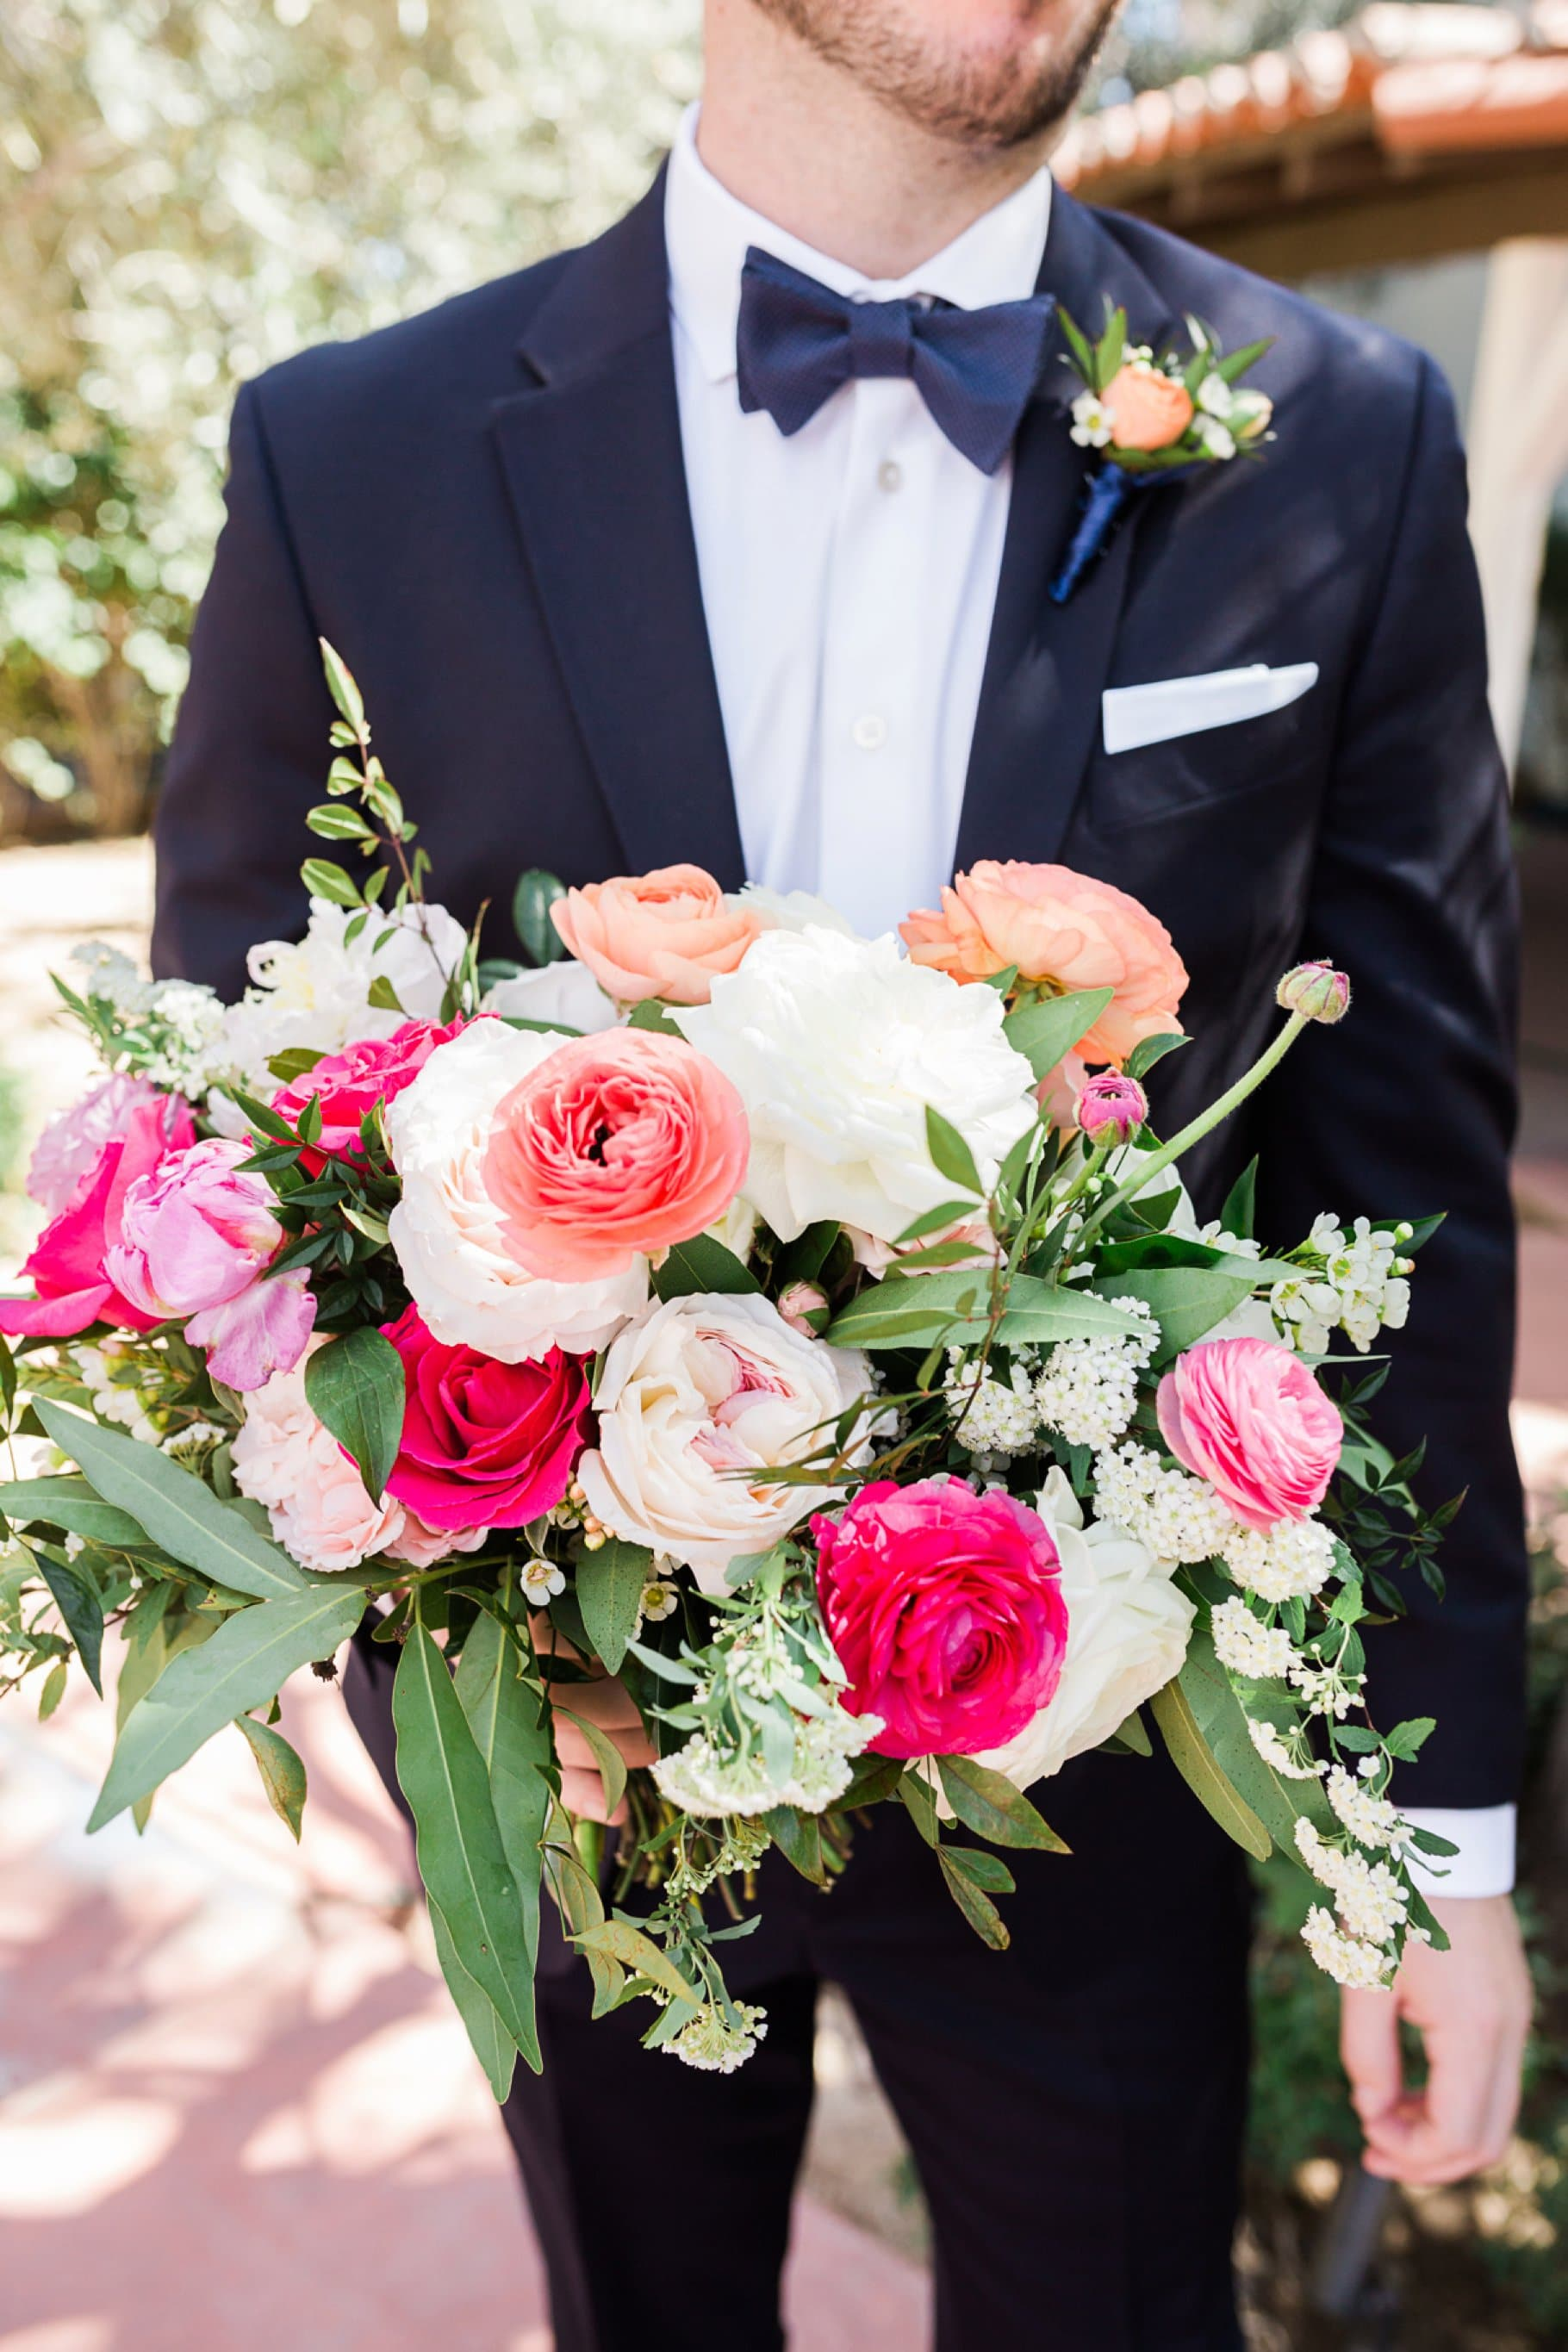 Groom Holding colorful wedding bouquet